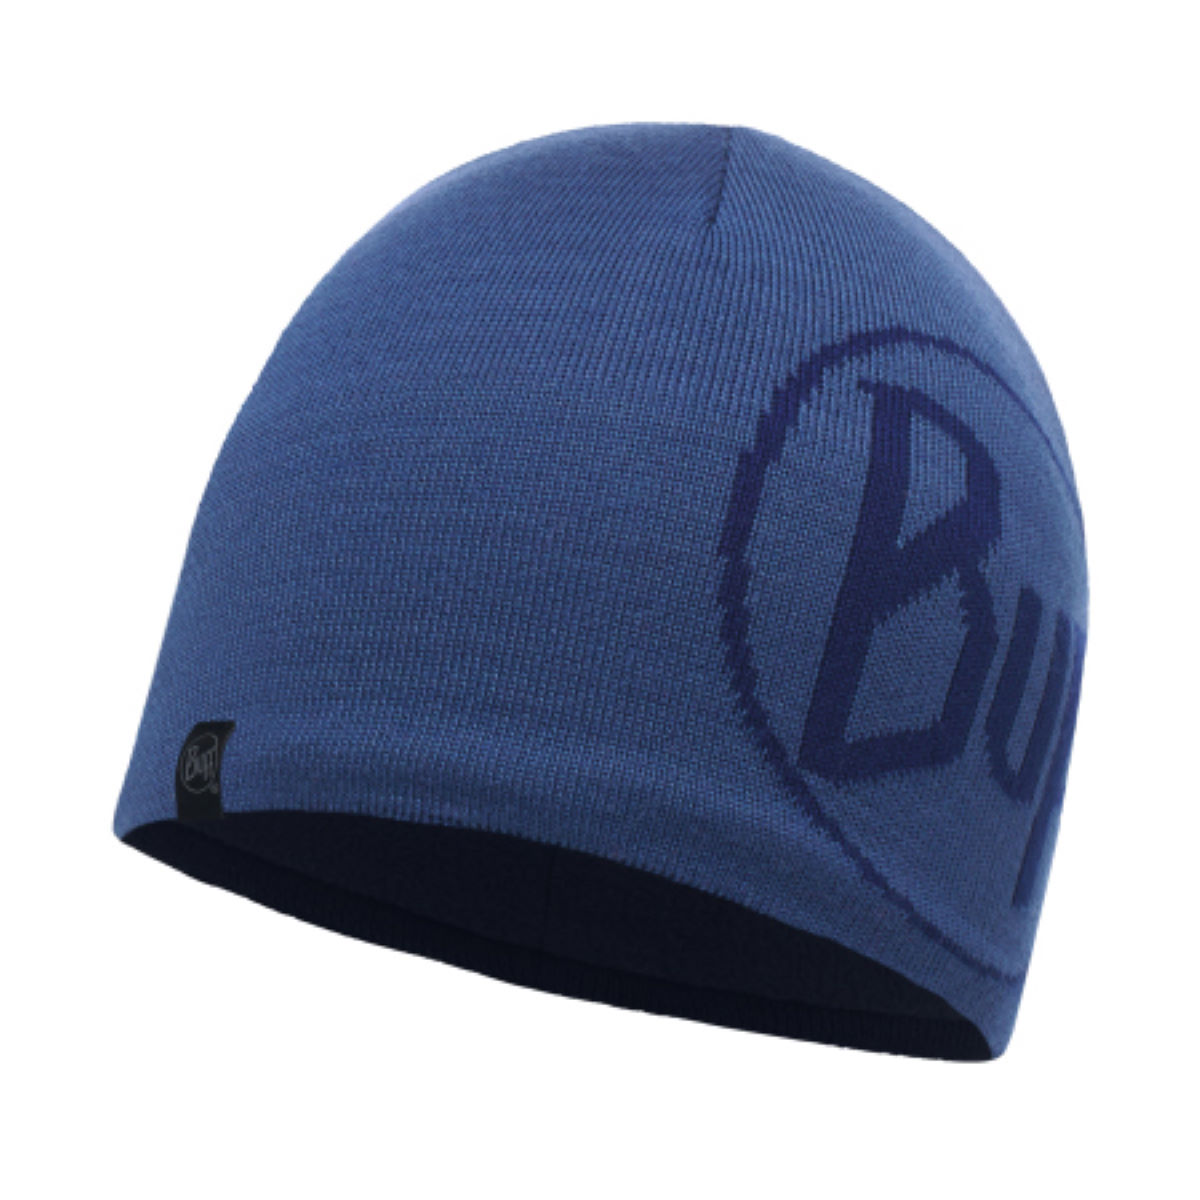 Bonnet Buff Lech Dusty Blue - One Size Bleu Bonnets thermiques